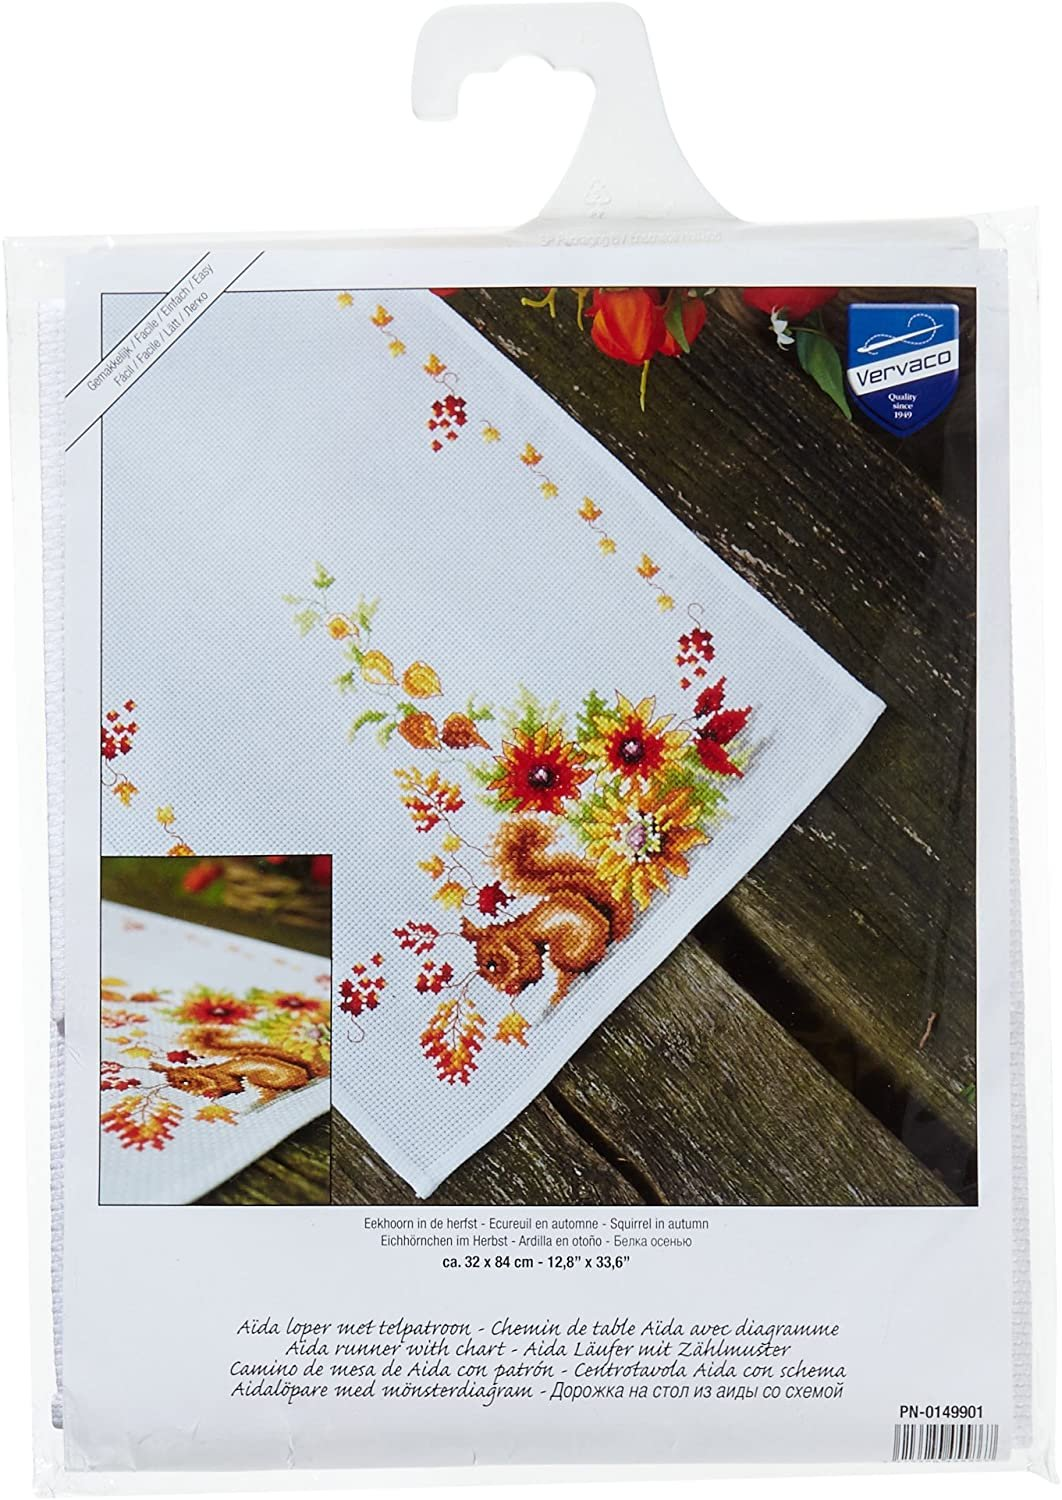 Squirrel In Autumn - Counted Cross Stitch Table Runner Kit